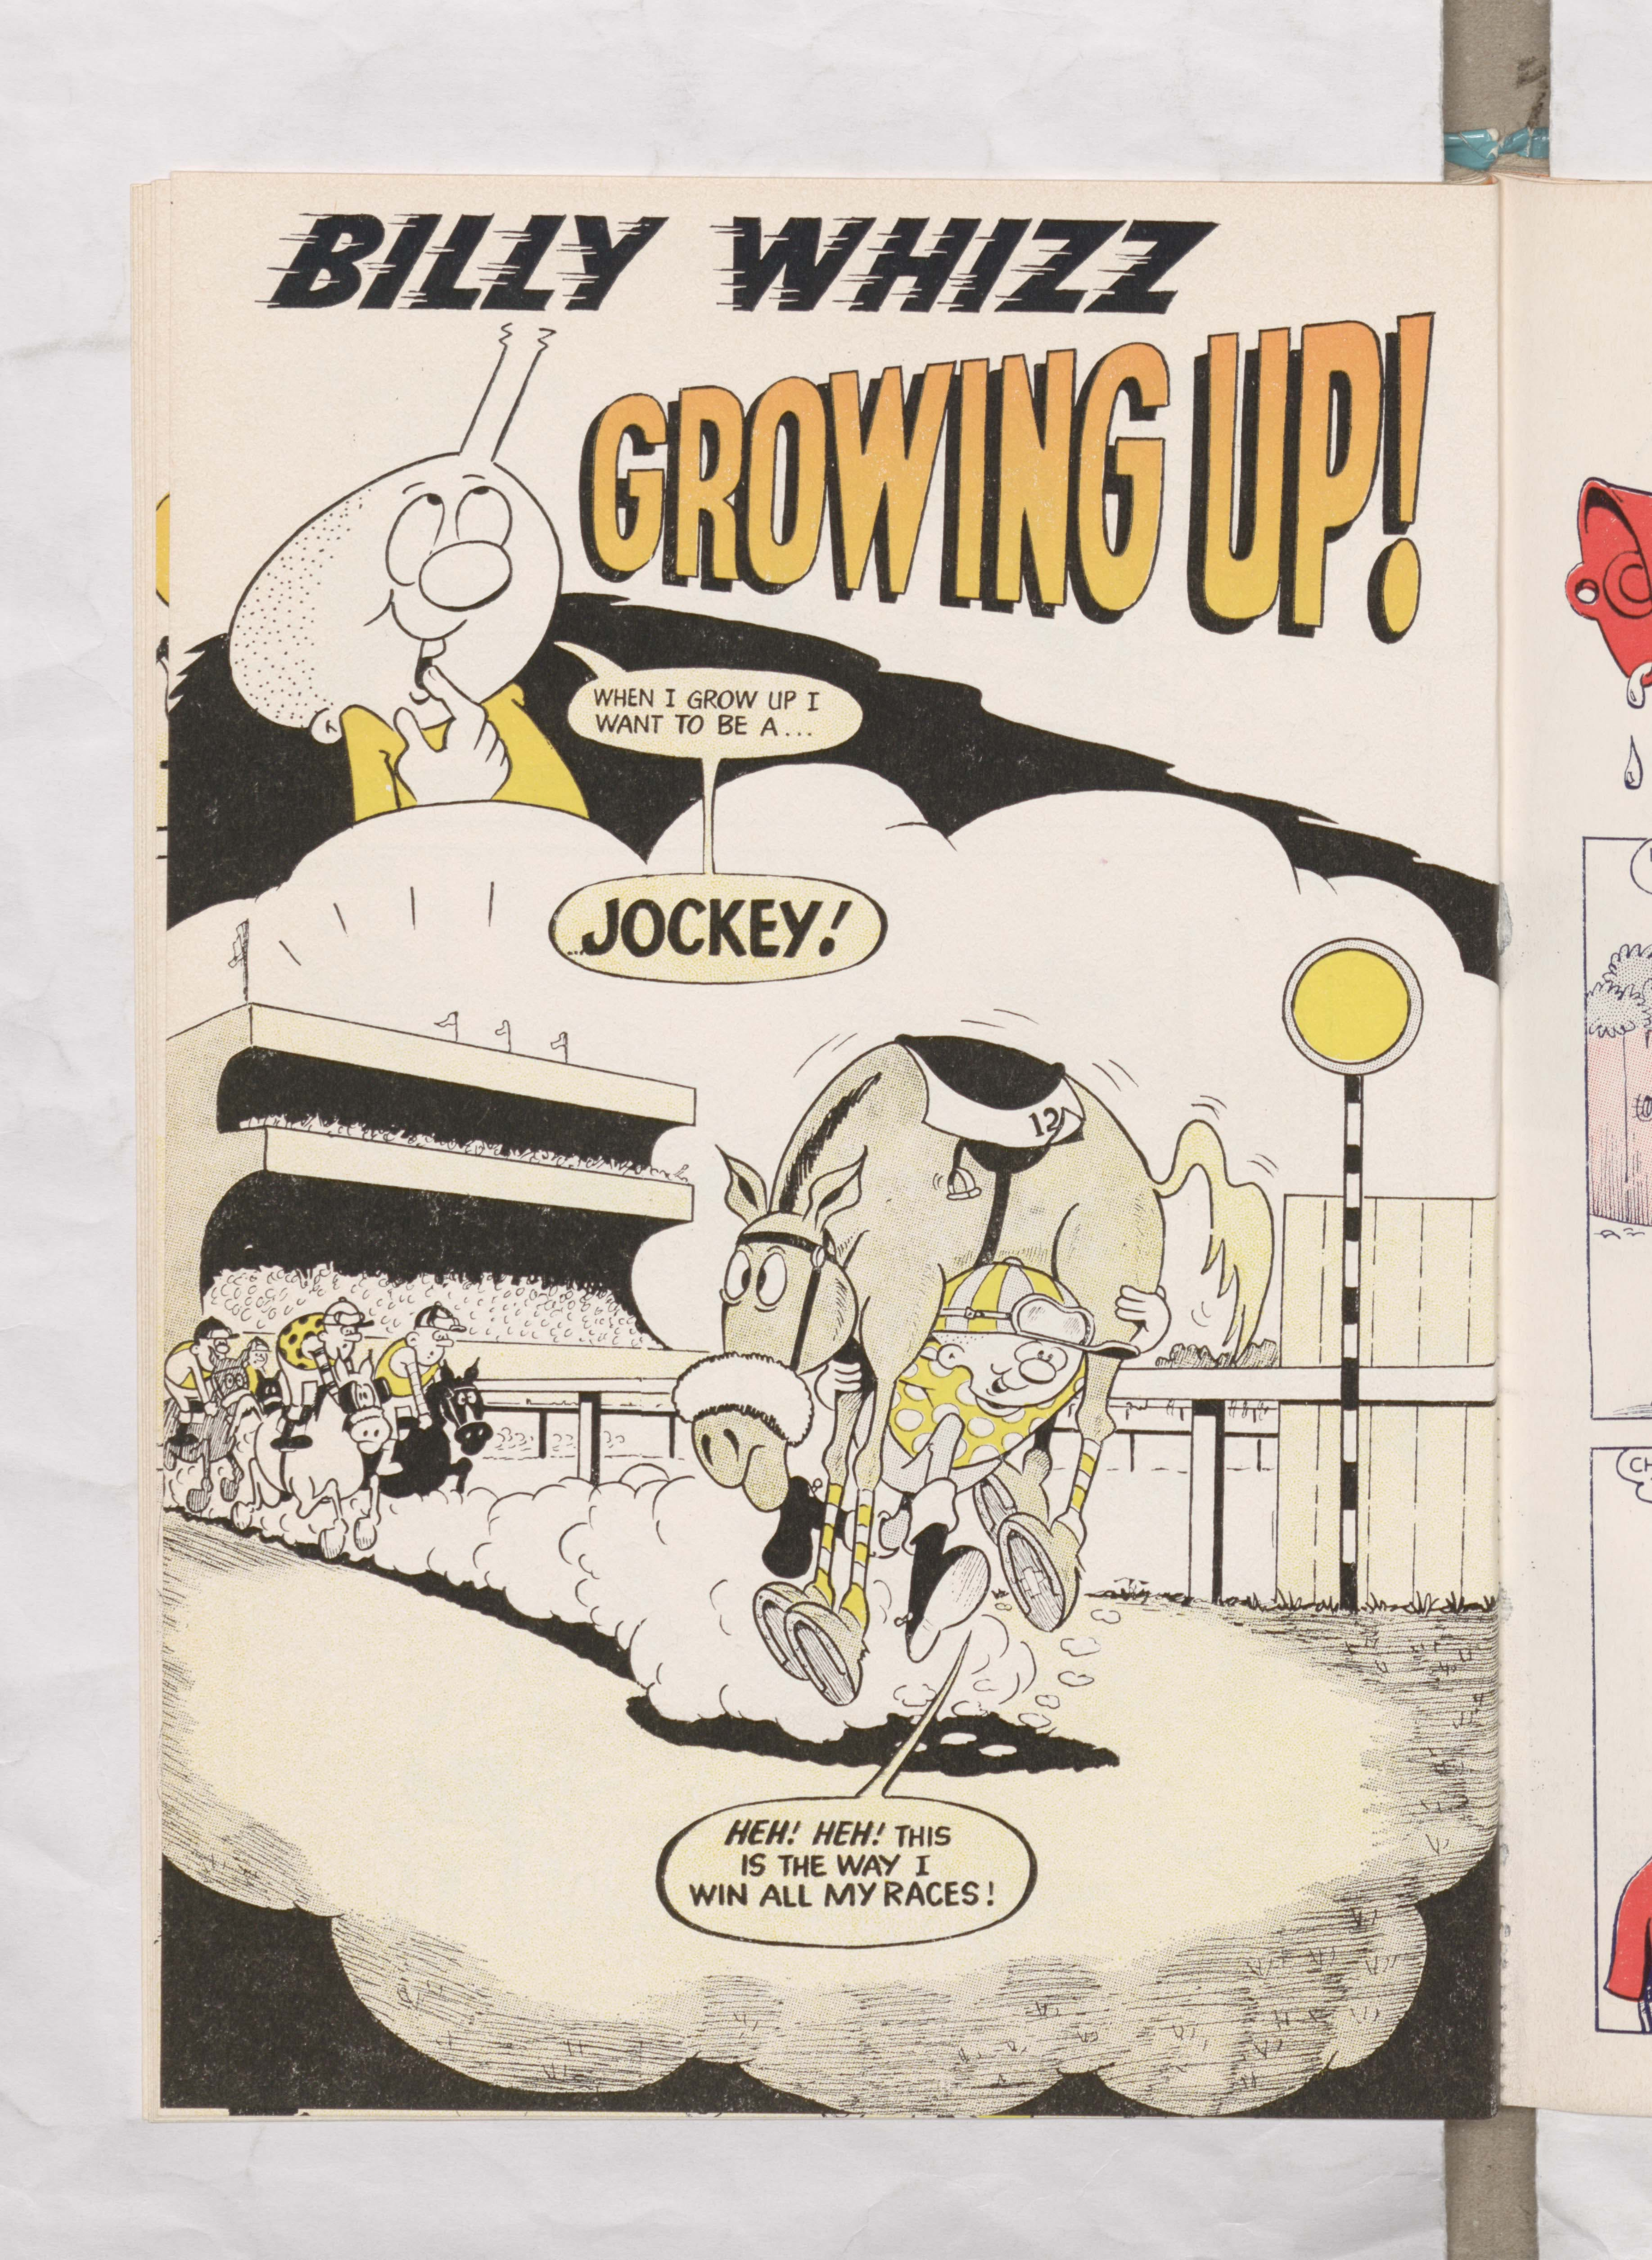 Beano Book 1976 Annual - Billy Whizz Grows Up